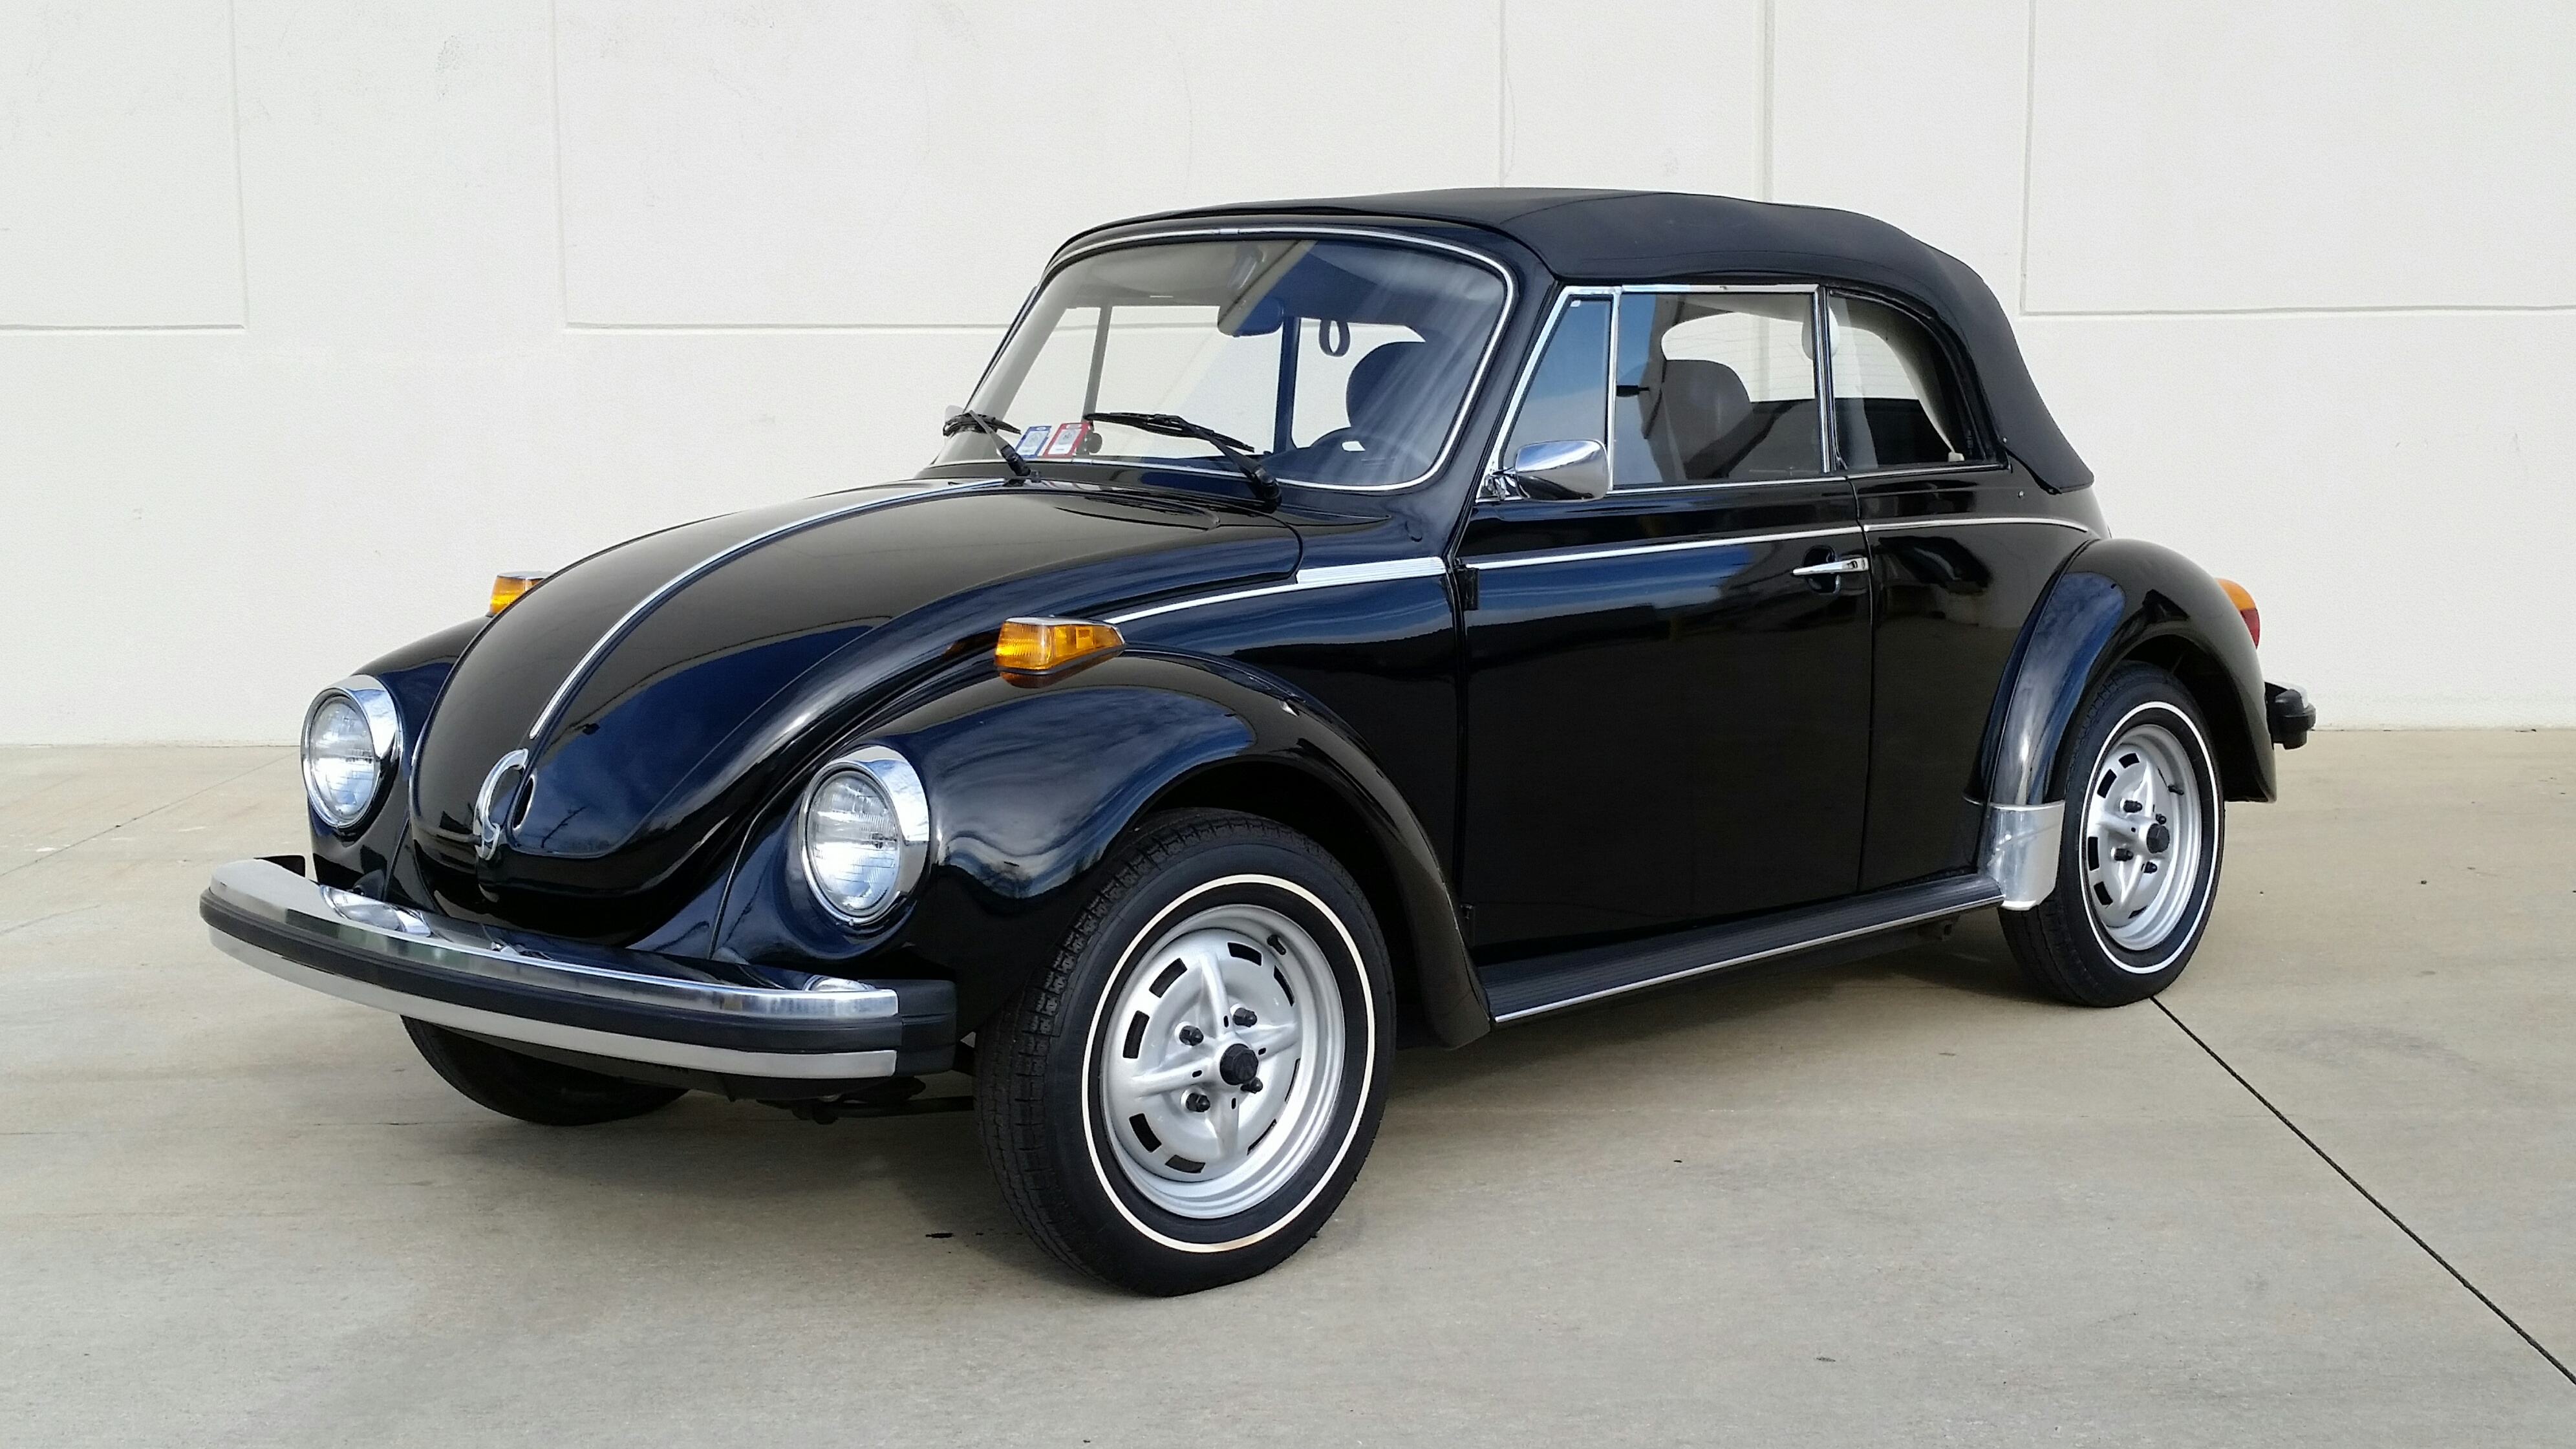 1979 Volkswagen Super Beetle Convertible Hollywood Wheels Auction Shows